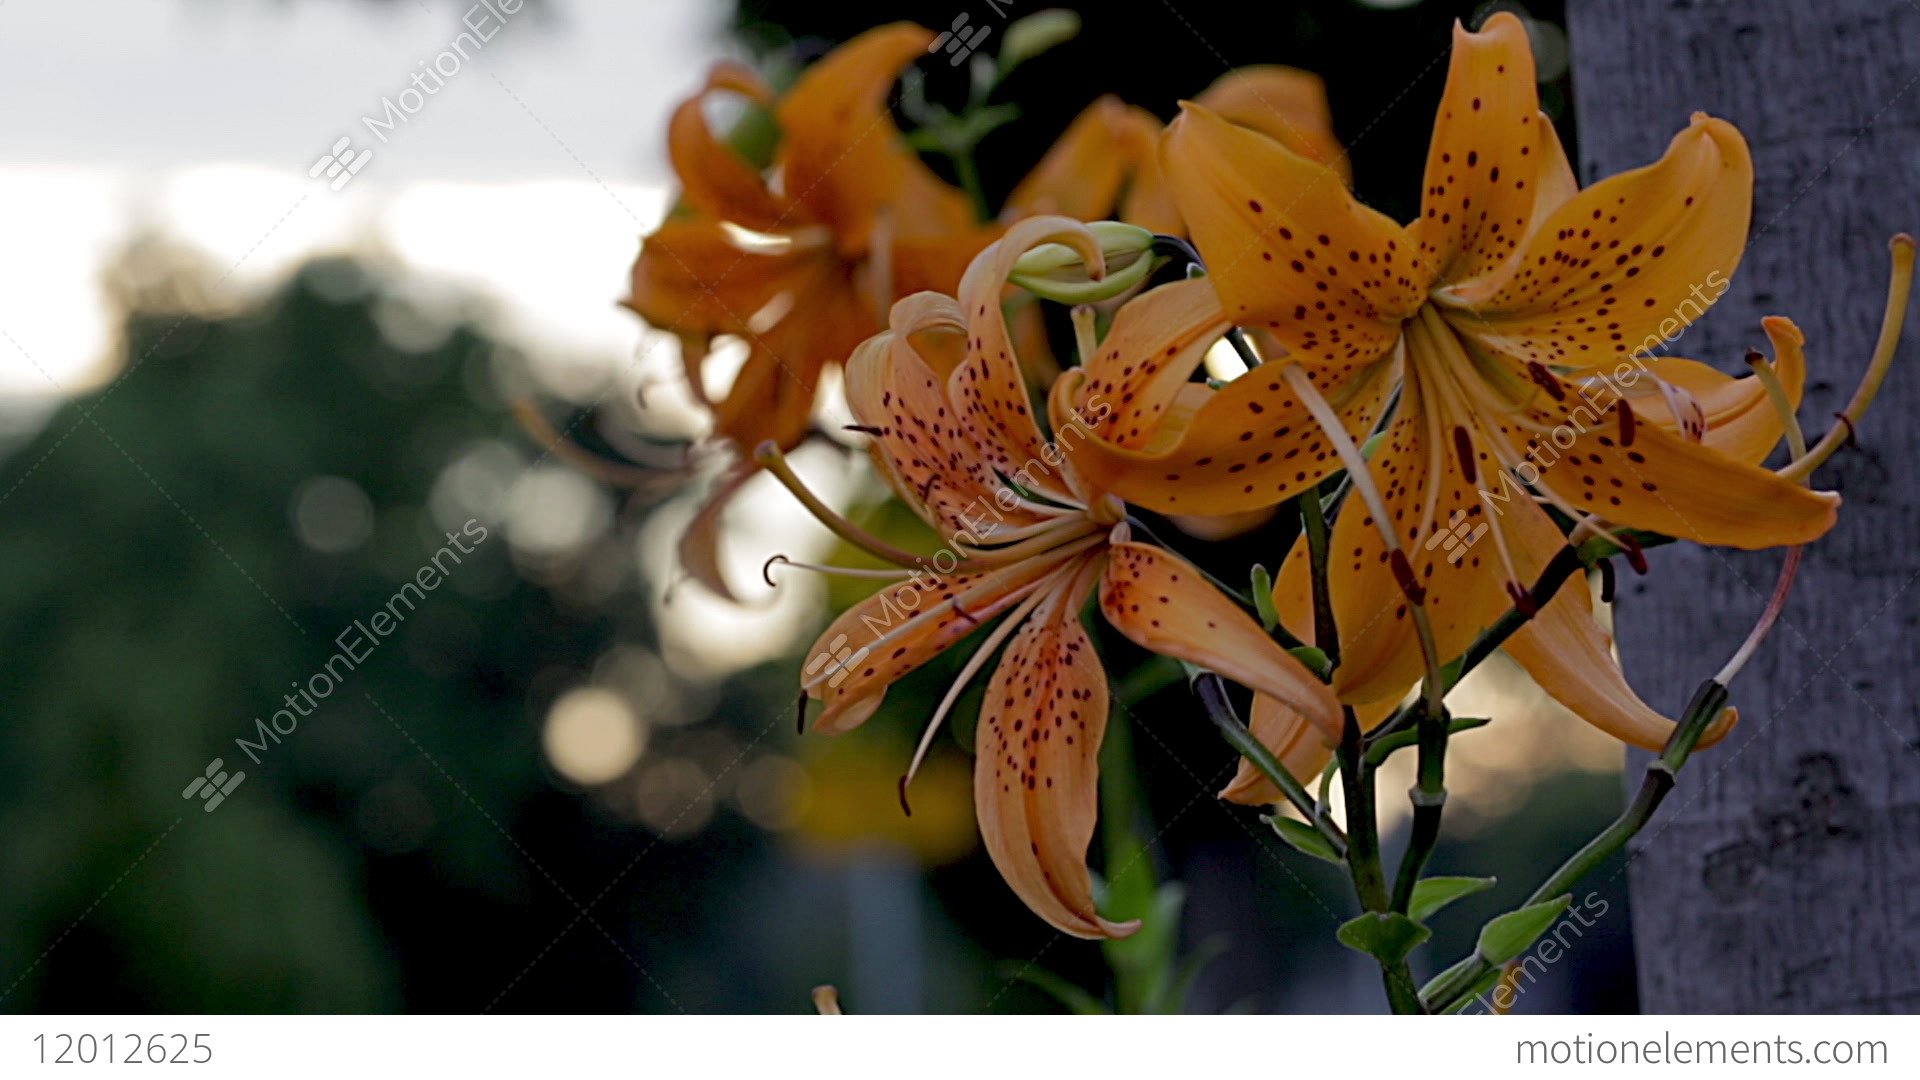 Rack Focus On An Orange And Black Tiger Lily Flower With A Blurred